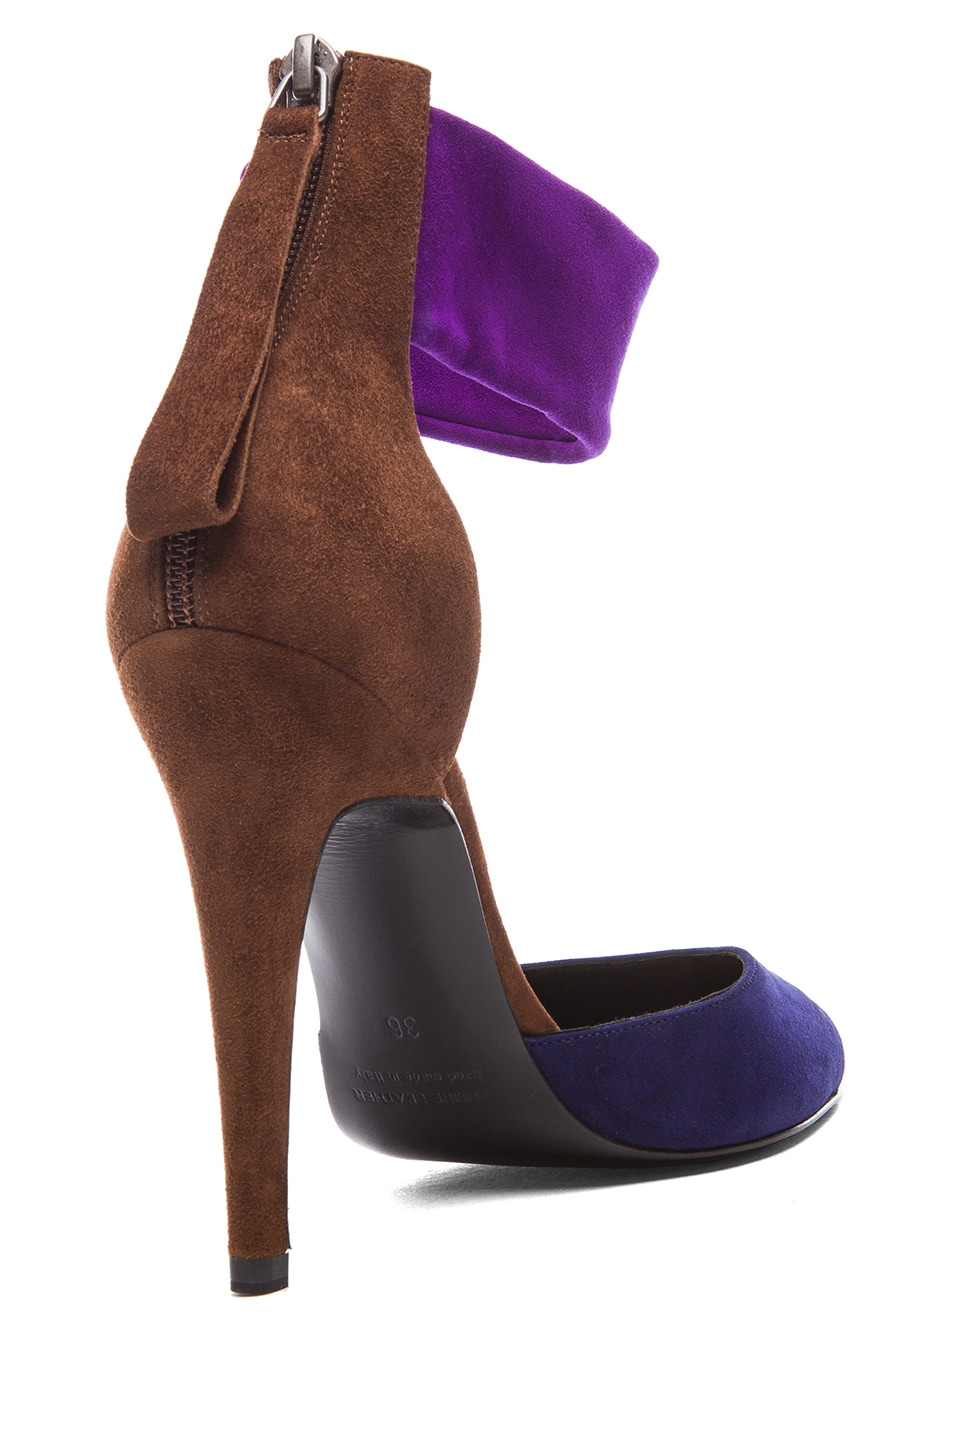 Image 3 of Pierre Hardy Altissimo Kid Suede Heels in Trico Blue